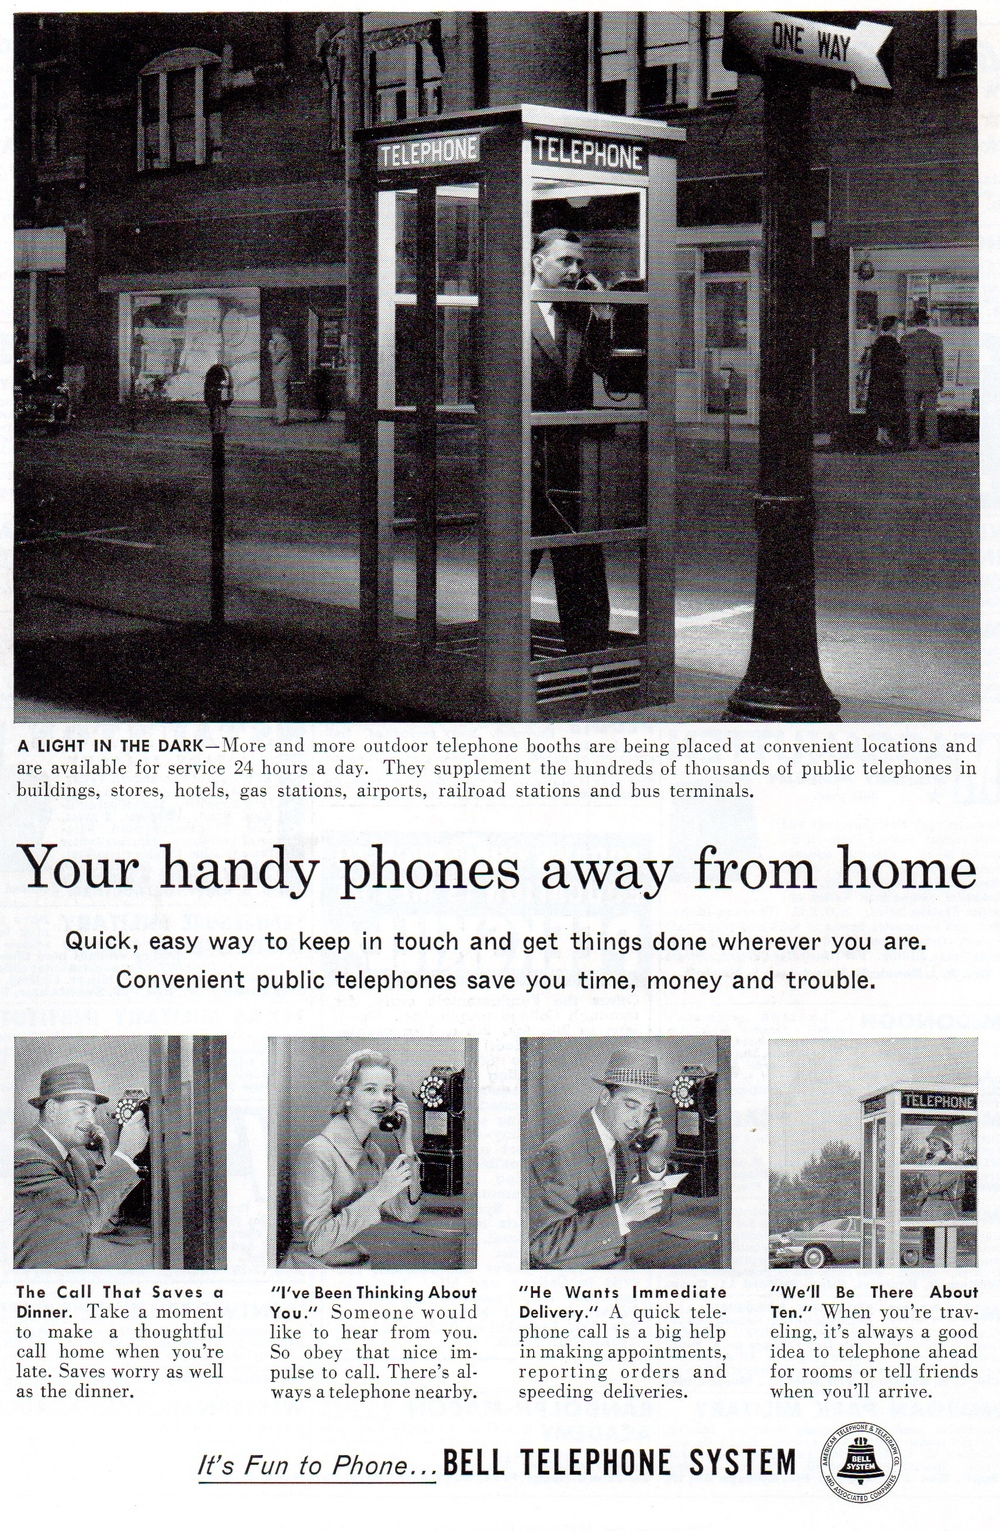 The Bell Telephone System wants you to stop by the side of the road to tell someone hi.